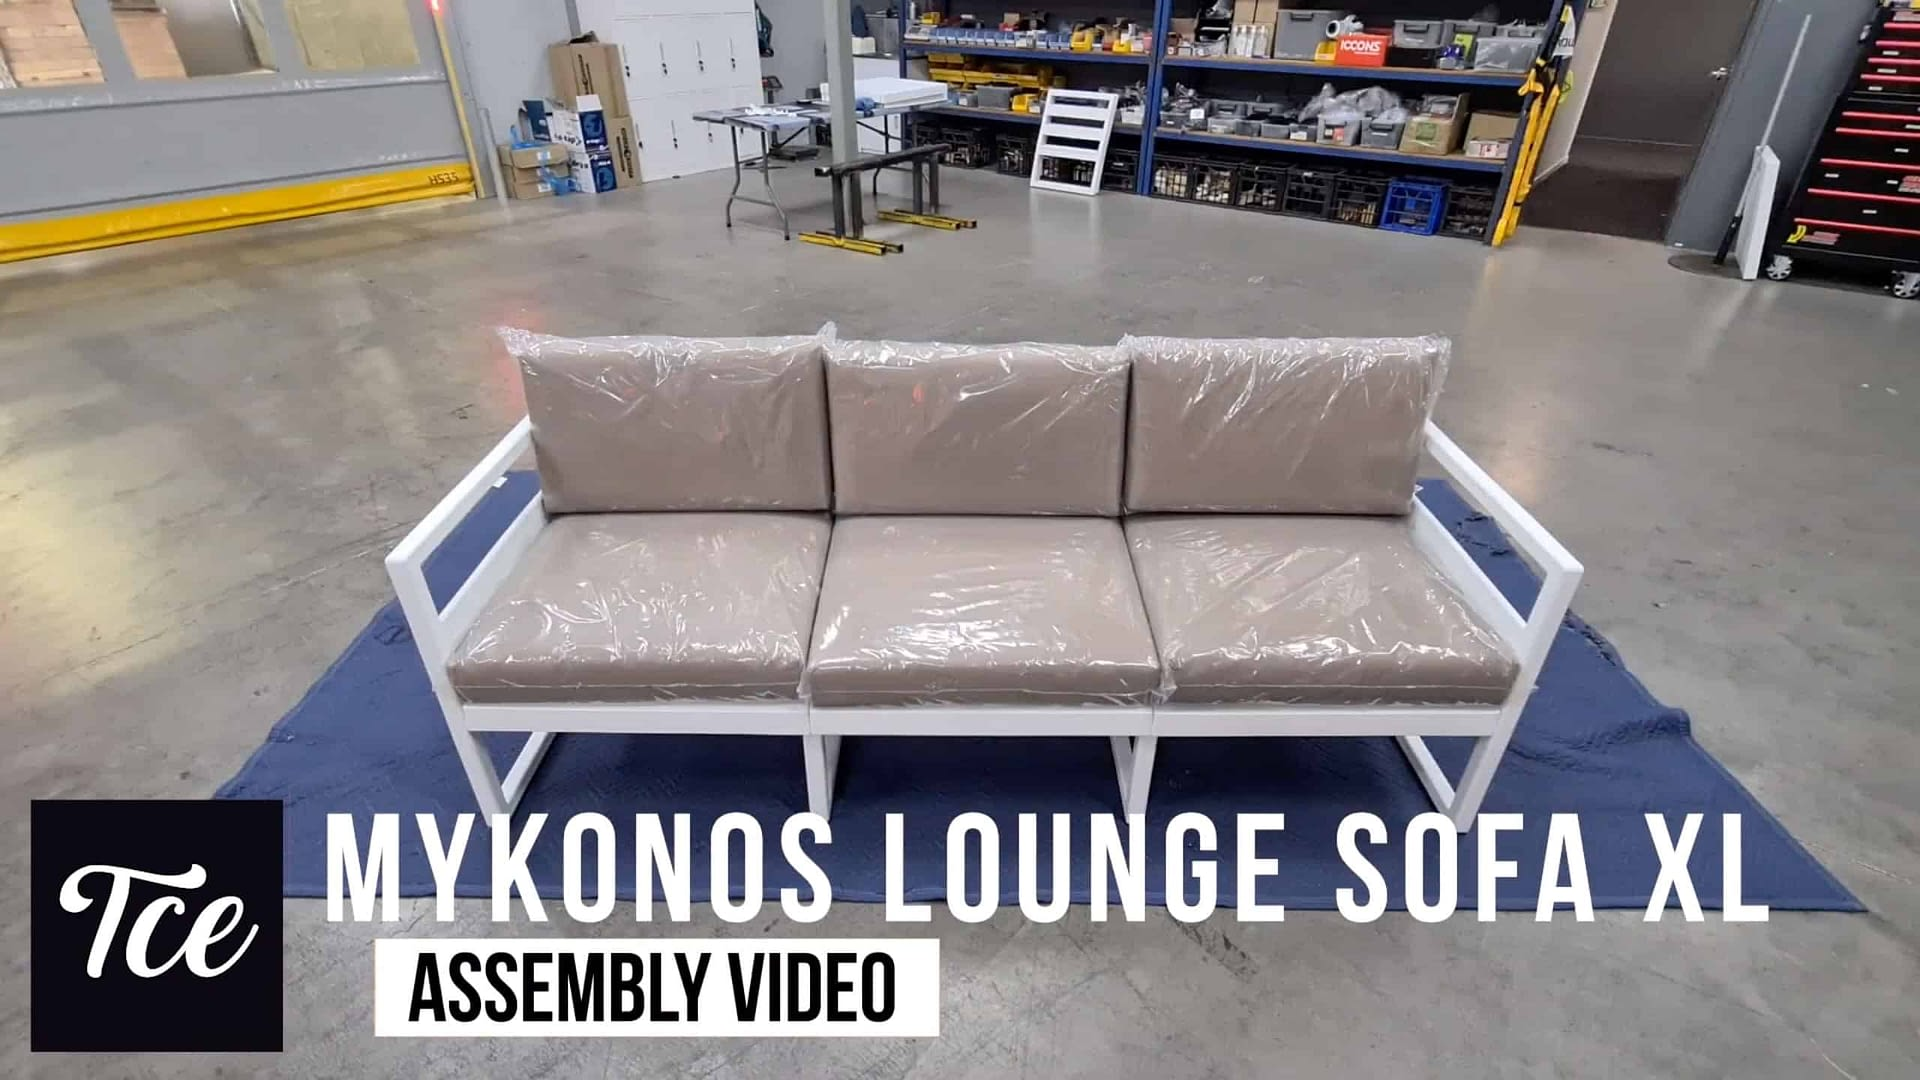 Assembly for the Mykonos Lounge Sofa XL